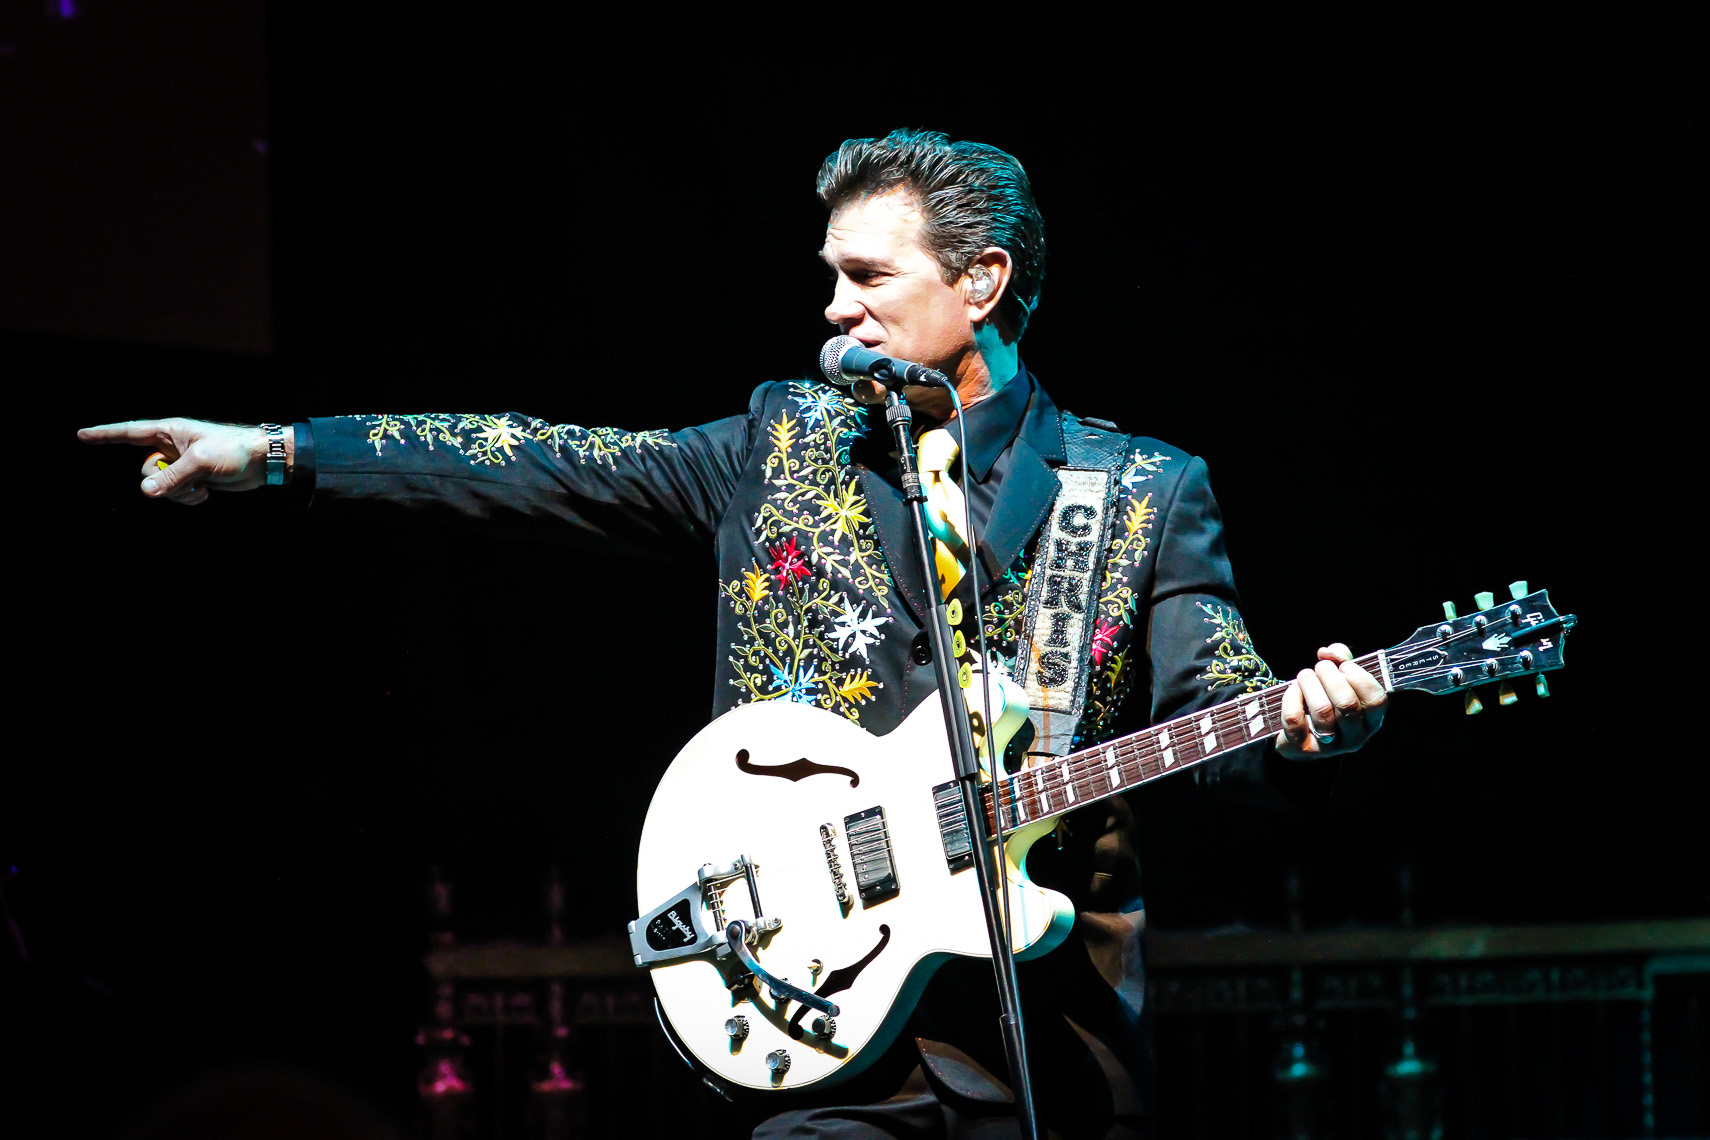 Chris Isaak by music photographer Deborah Lowery